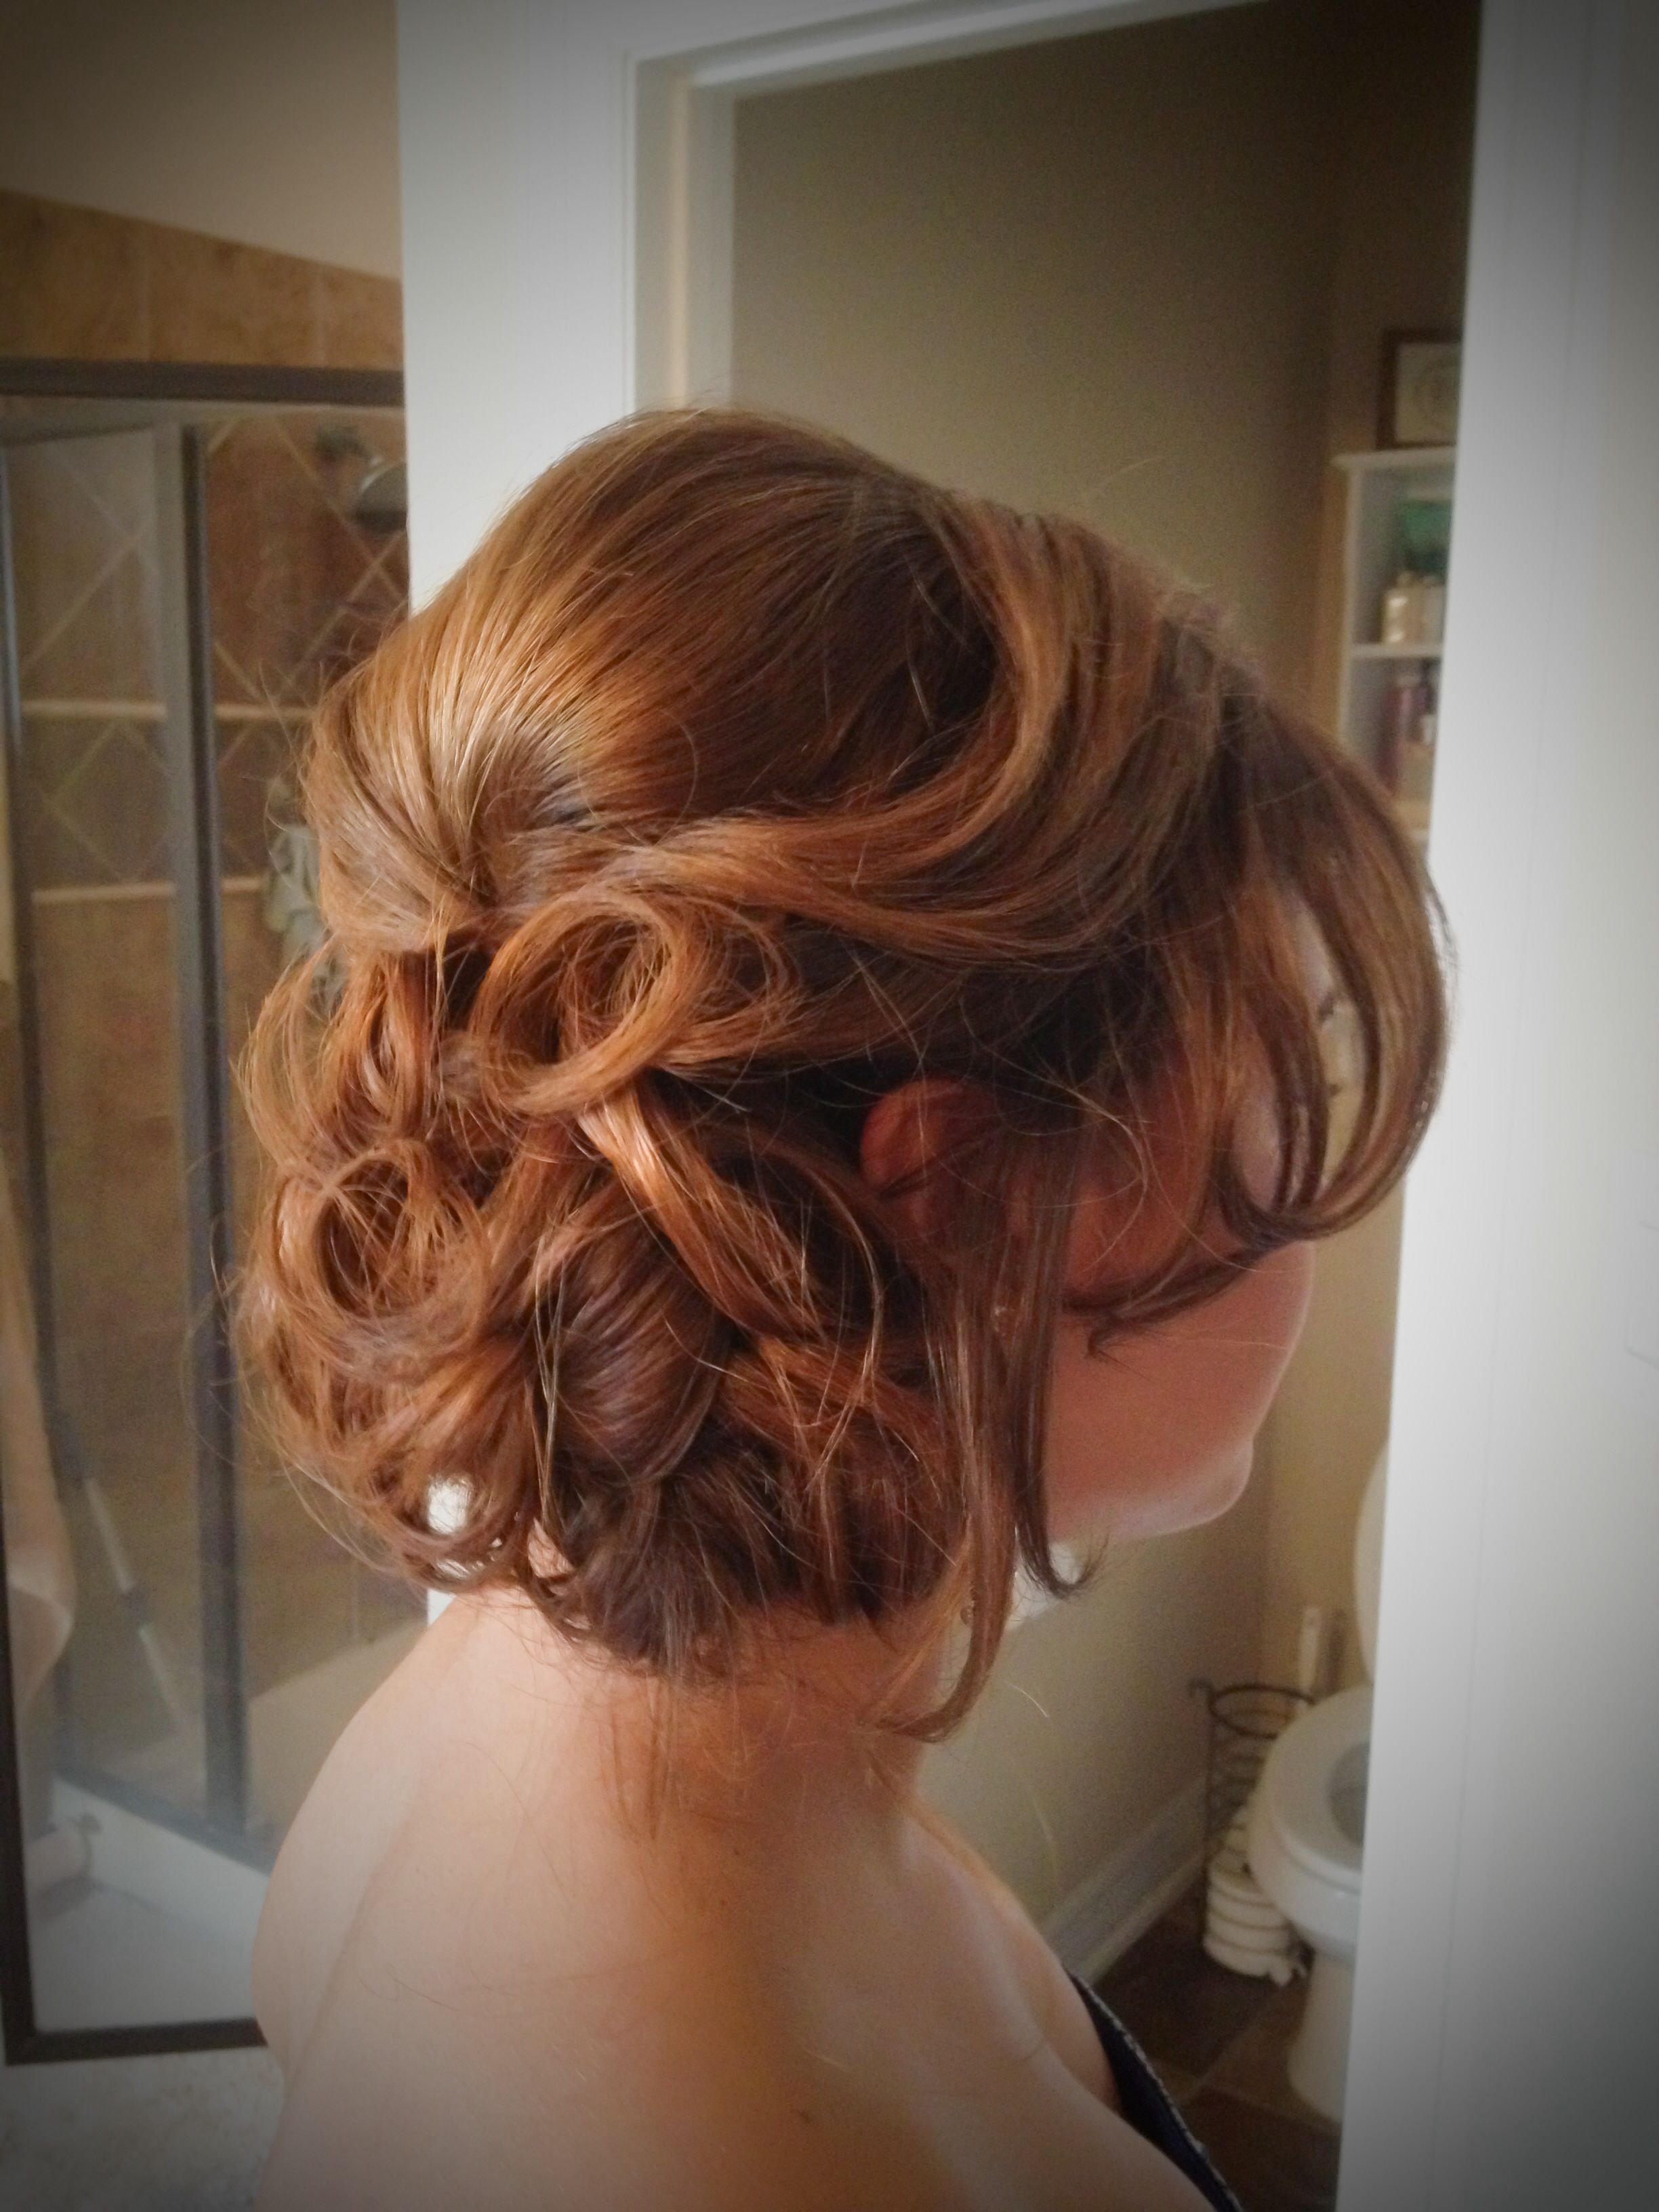 Bridal Updo Prom Updo Www Knotandveil Wordpress Com San Antonio Tx Hair Makeup Bridal Updo Hair Styles